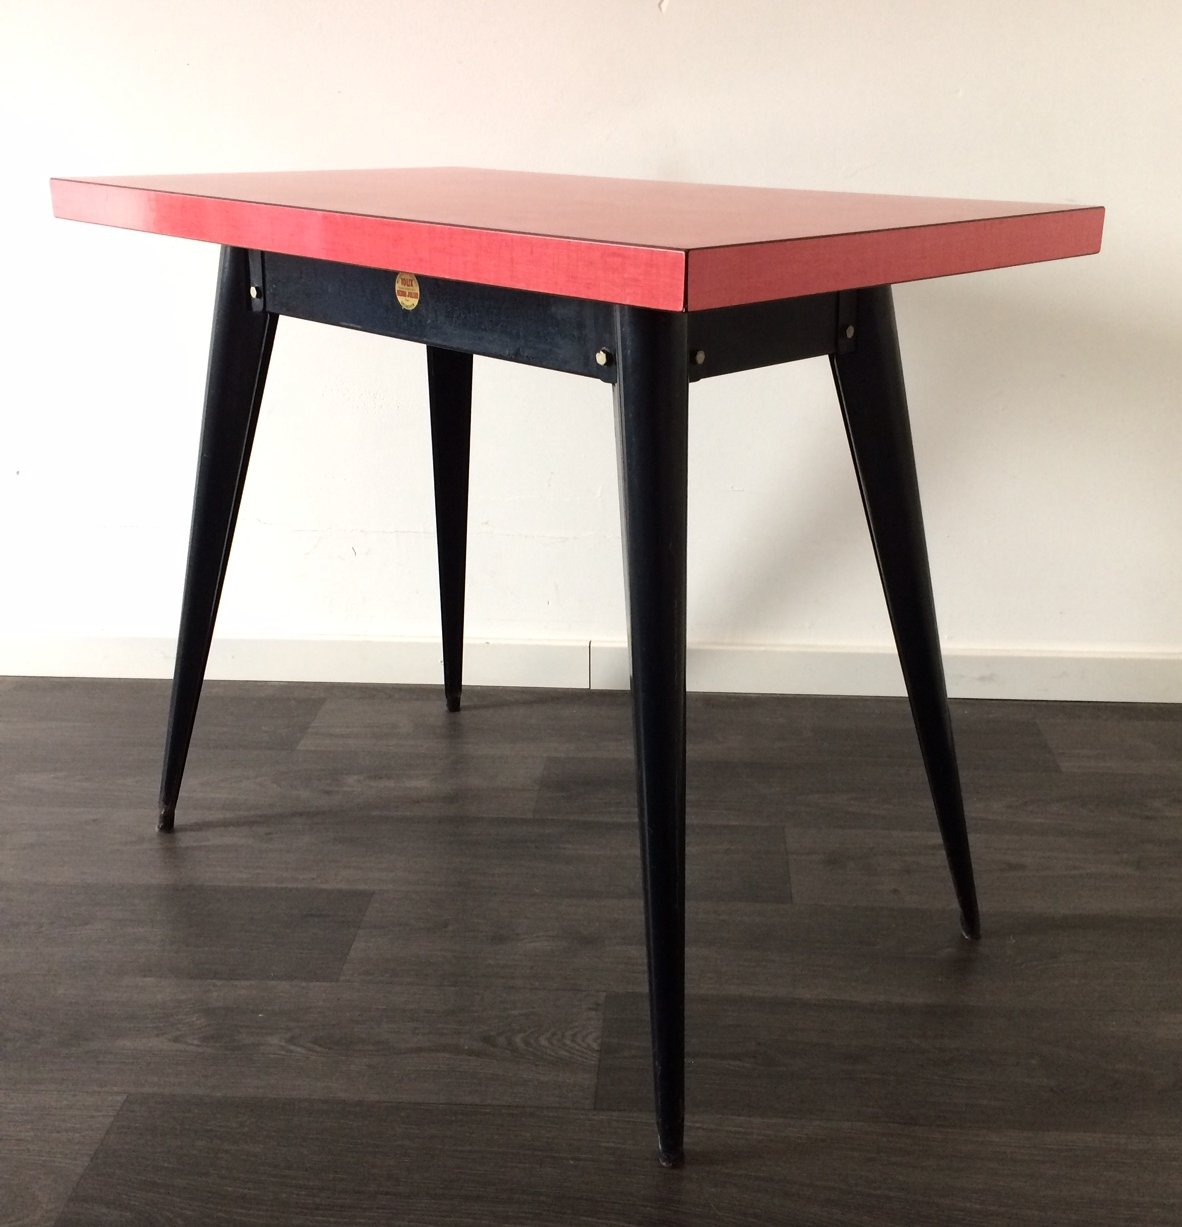 Image of: Vintage Midcentury Industrial Design Tolix Bistro Table By Xavier Pauchard 1950s 112032